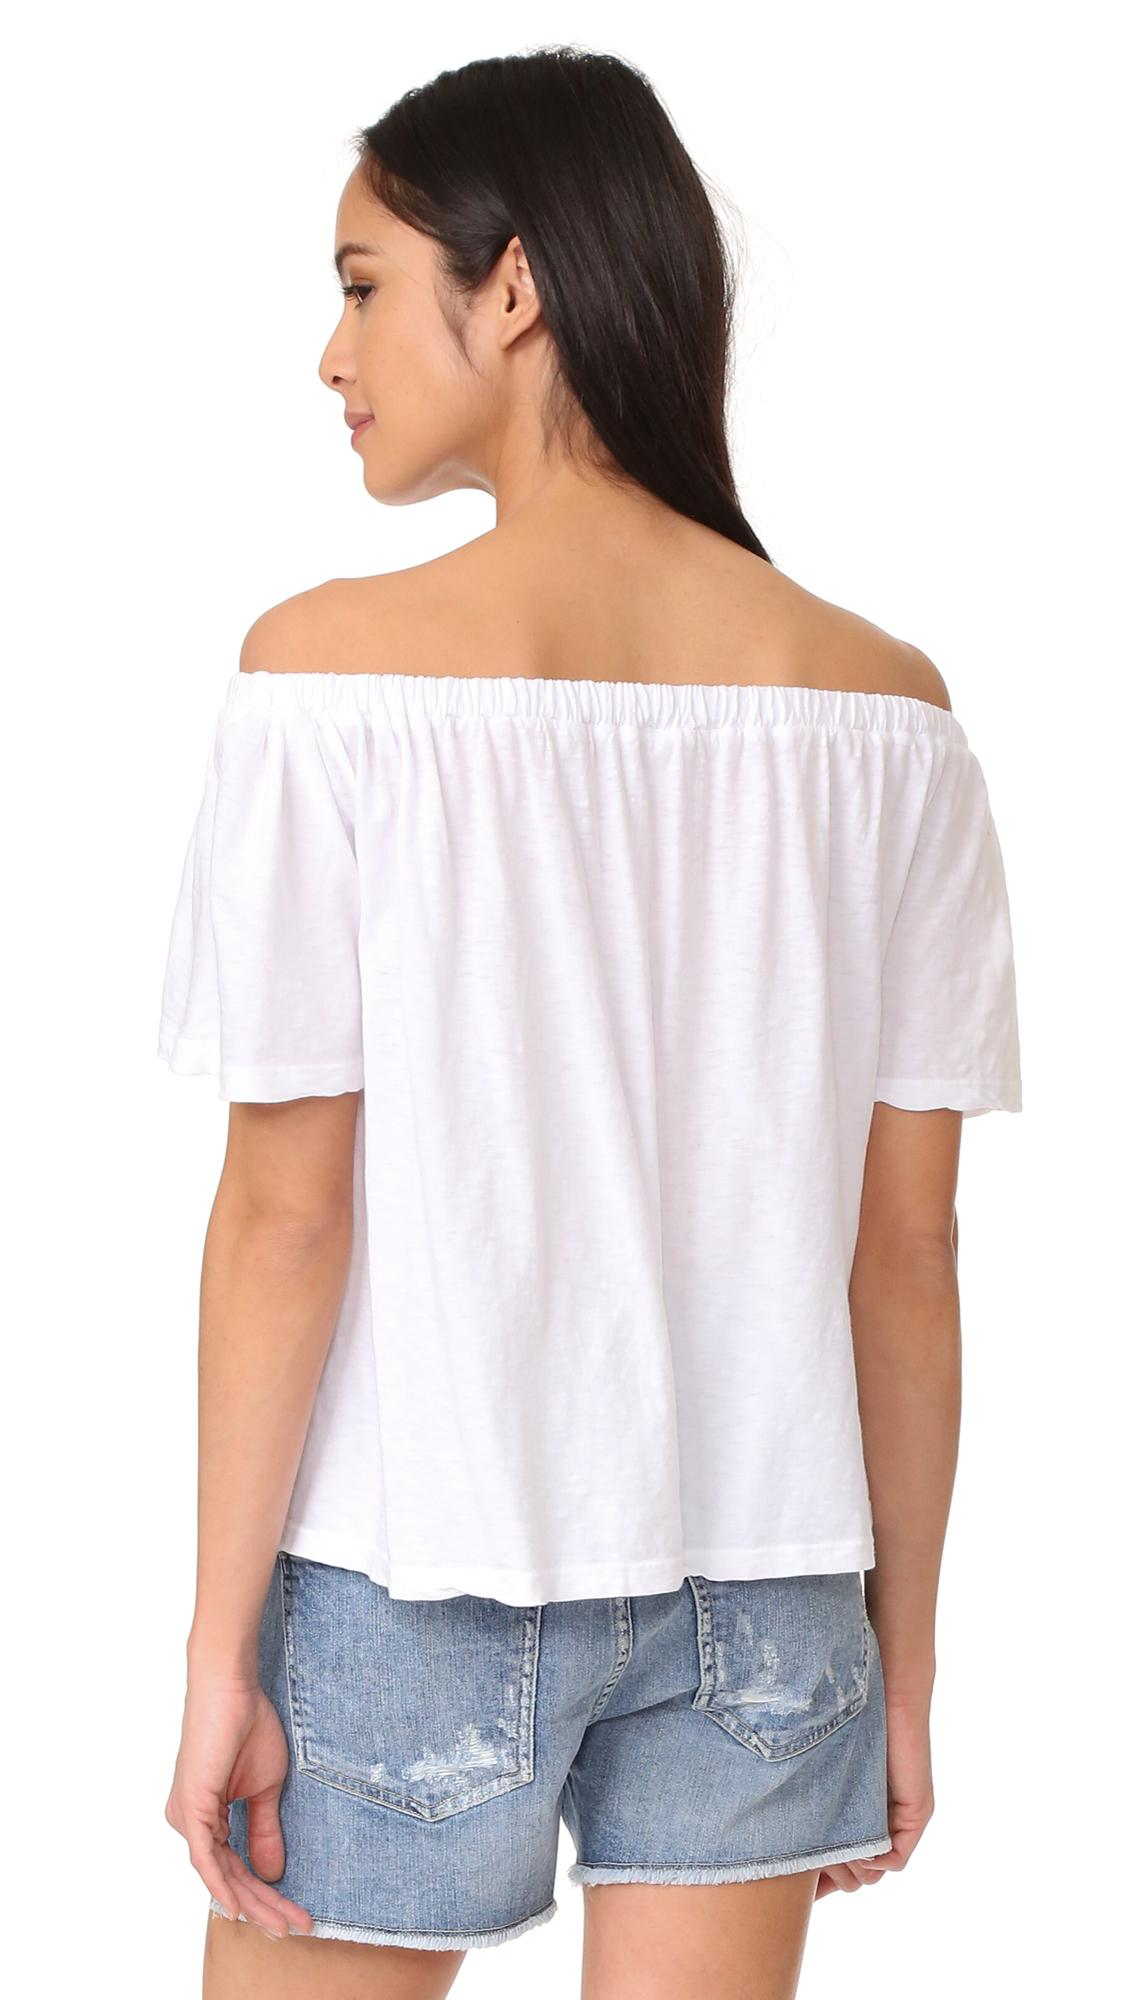 Sundry Off The Shoulder Top in White | Lyst